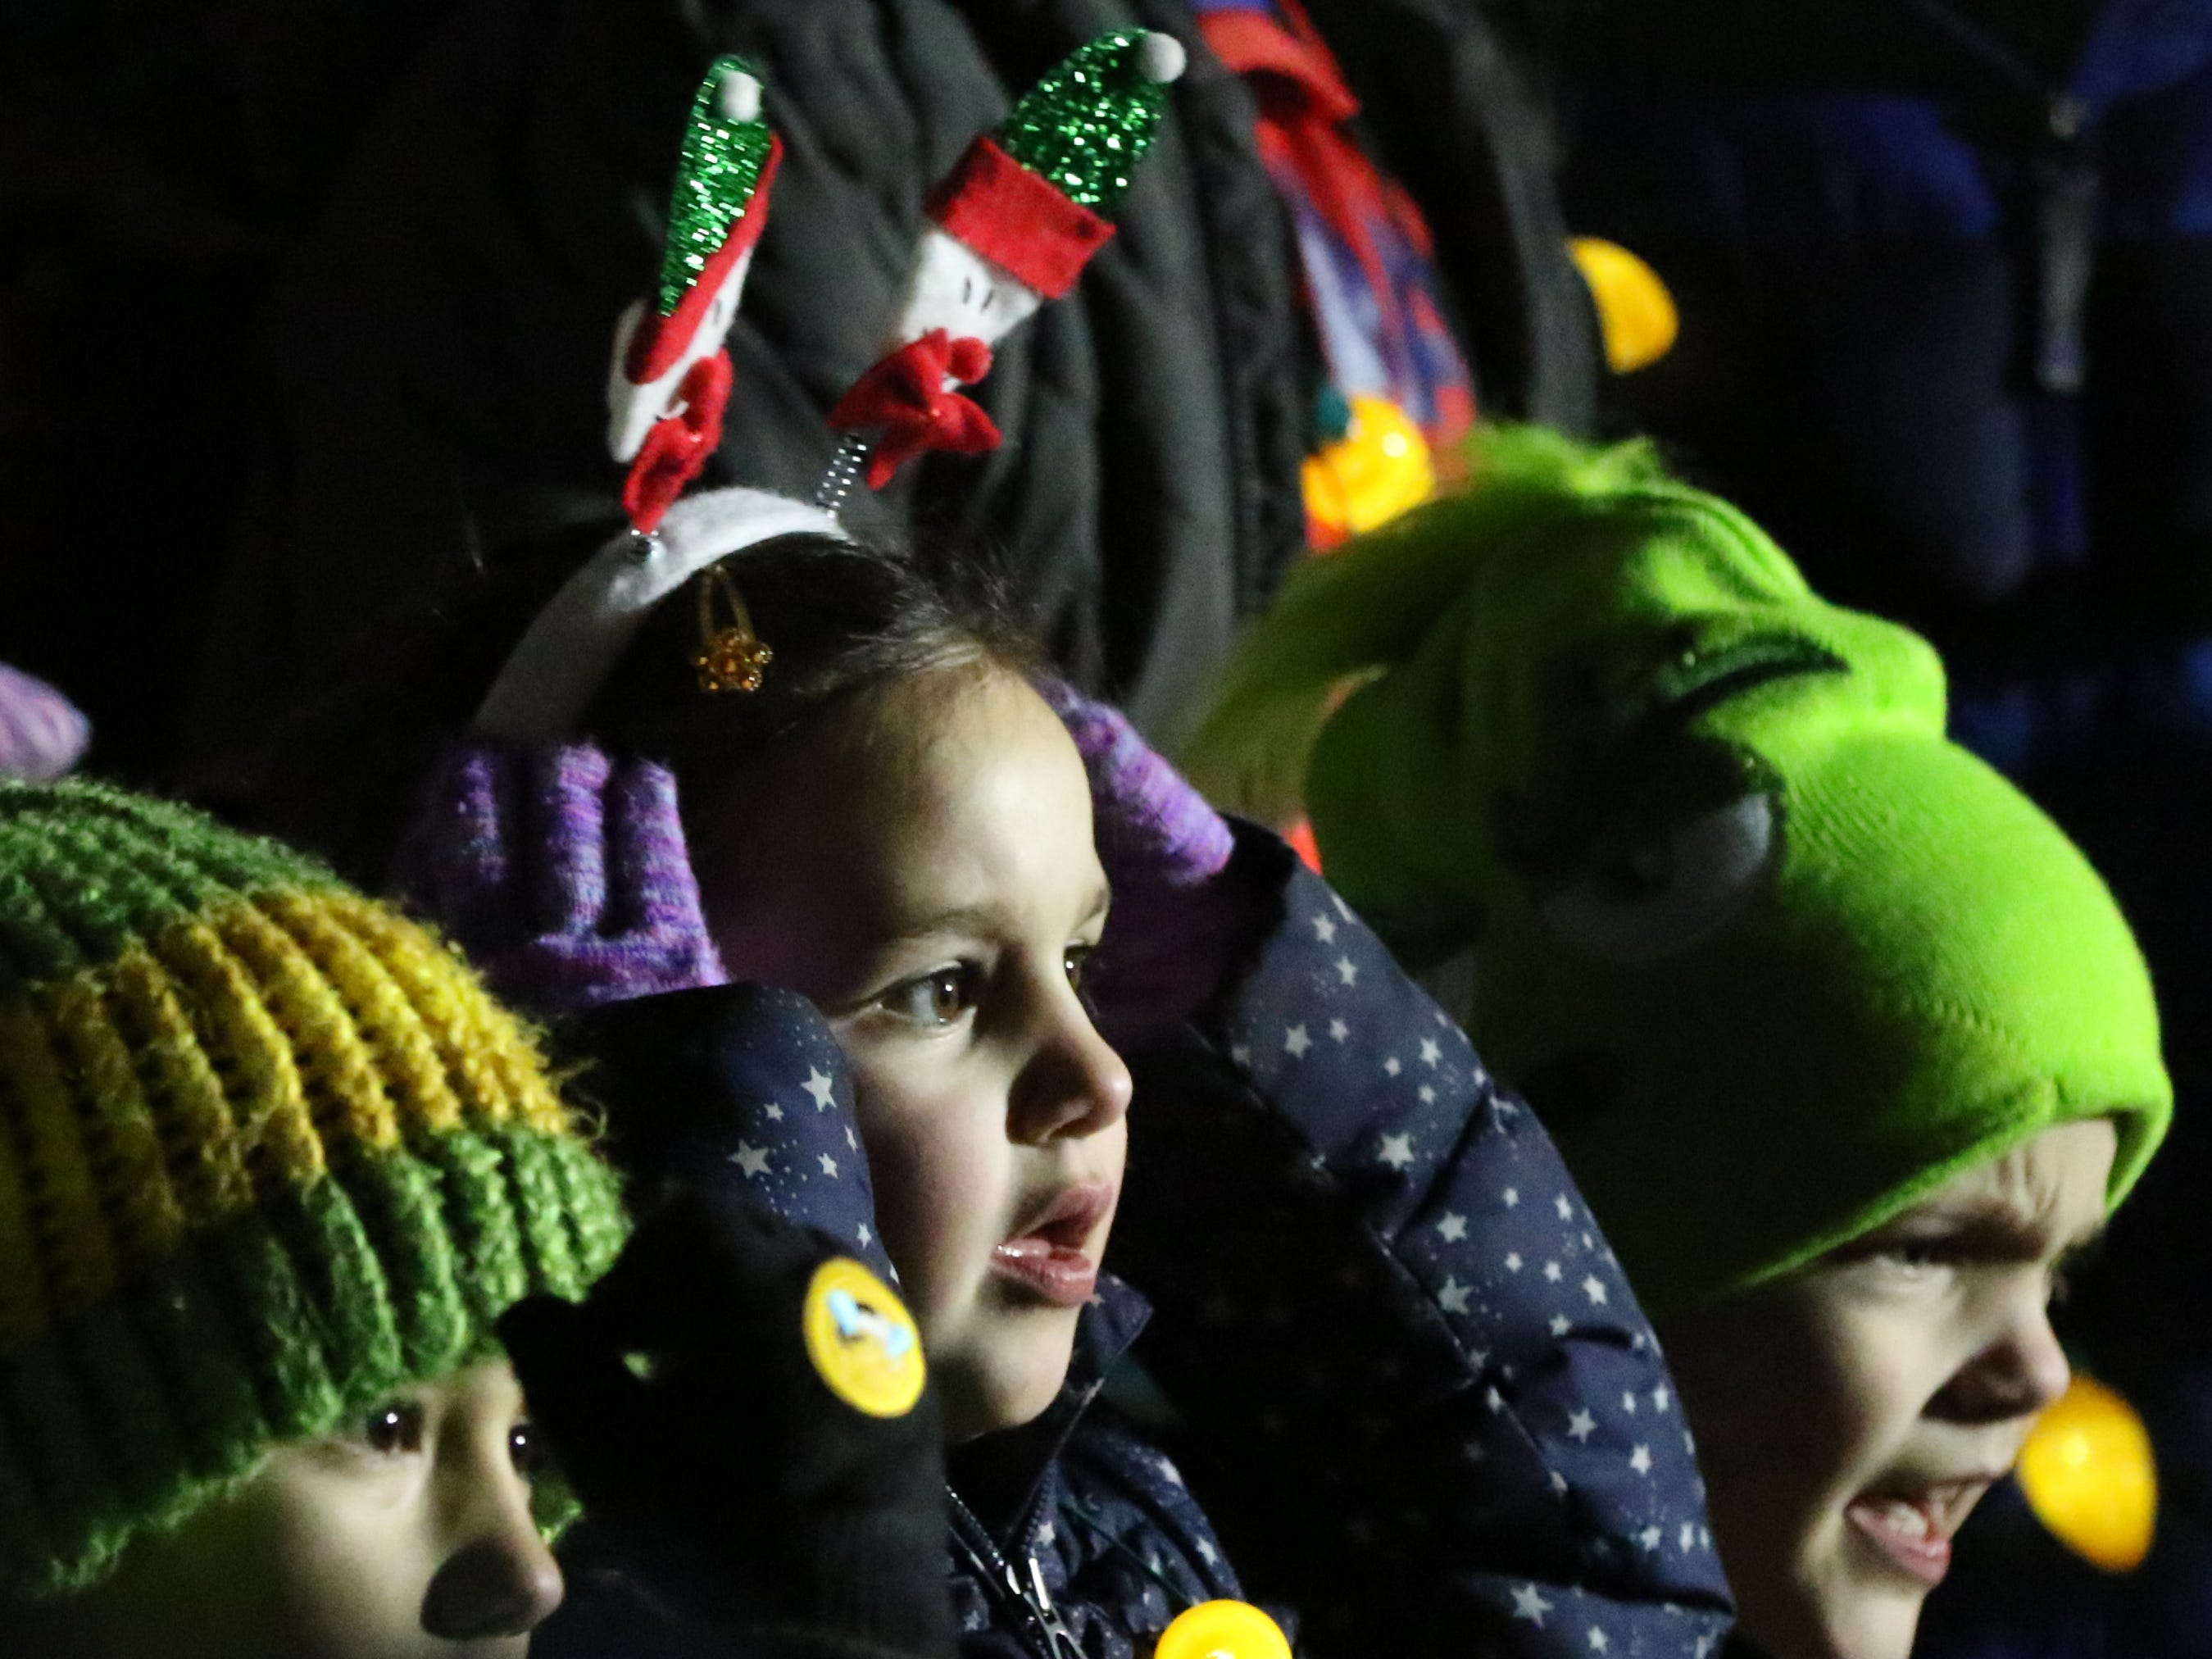 Childrens Choir members get ready to perform during Hartland Lights on Nov. 30.